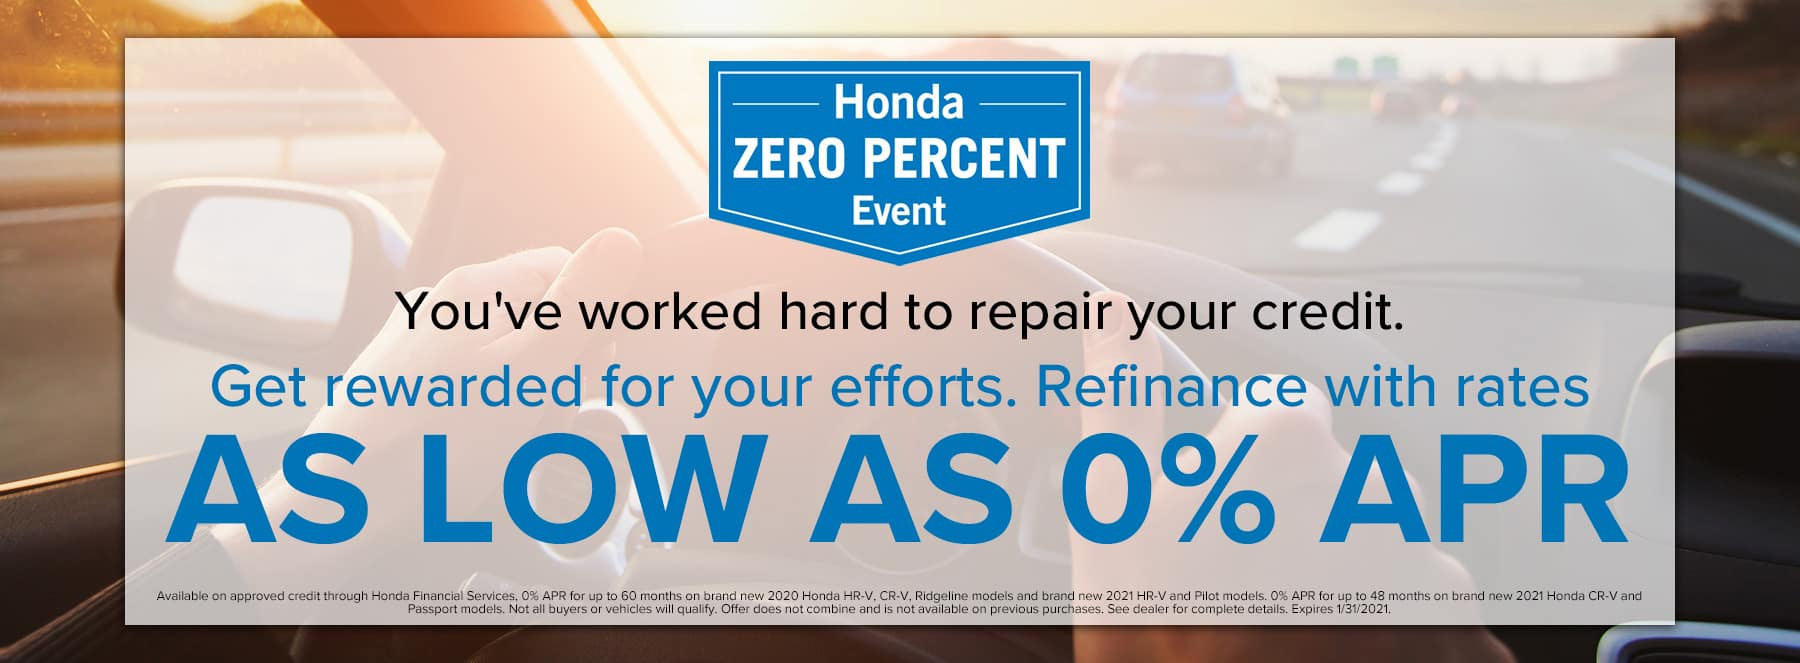 Refinance with rates as low as 0% APR